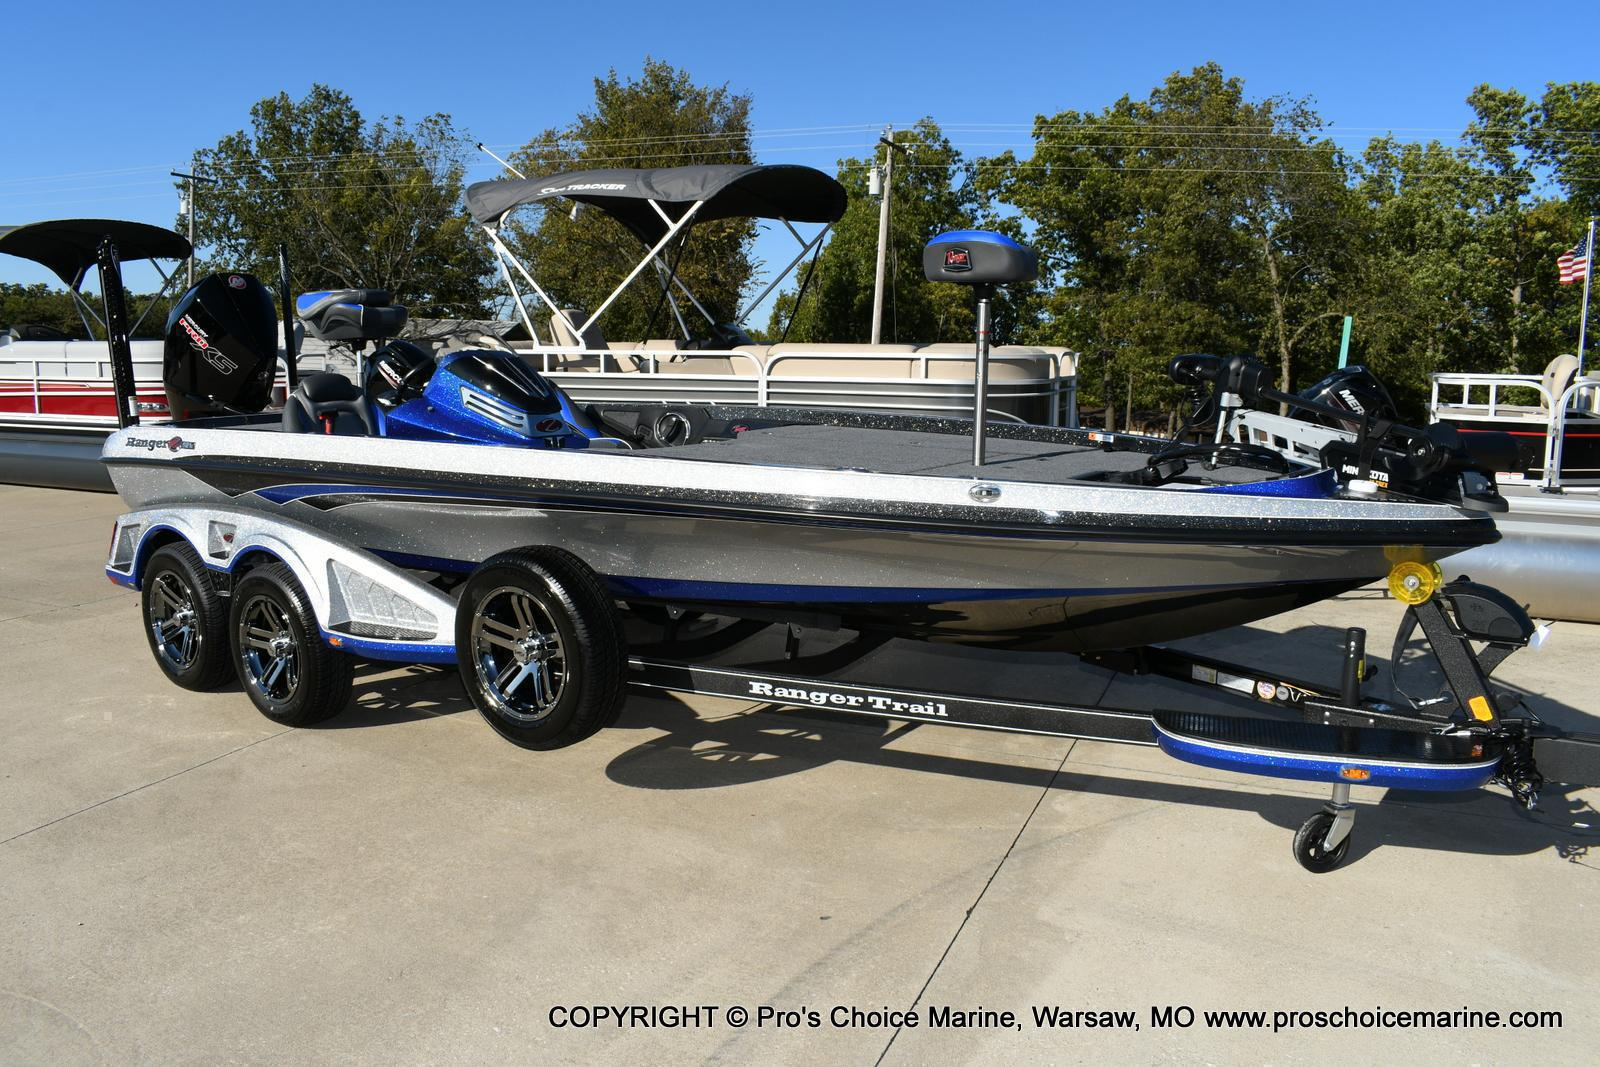 2020 Ranger Boats boat for sale, model of the boat is Z521C Ranger Cup Equipped & Image # 1 of 50